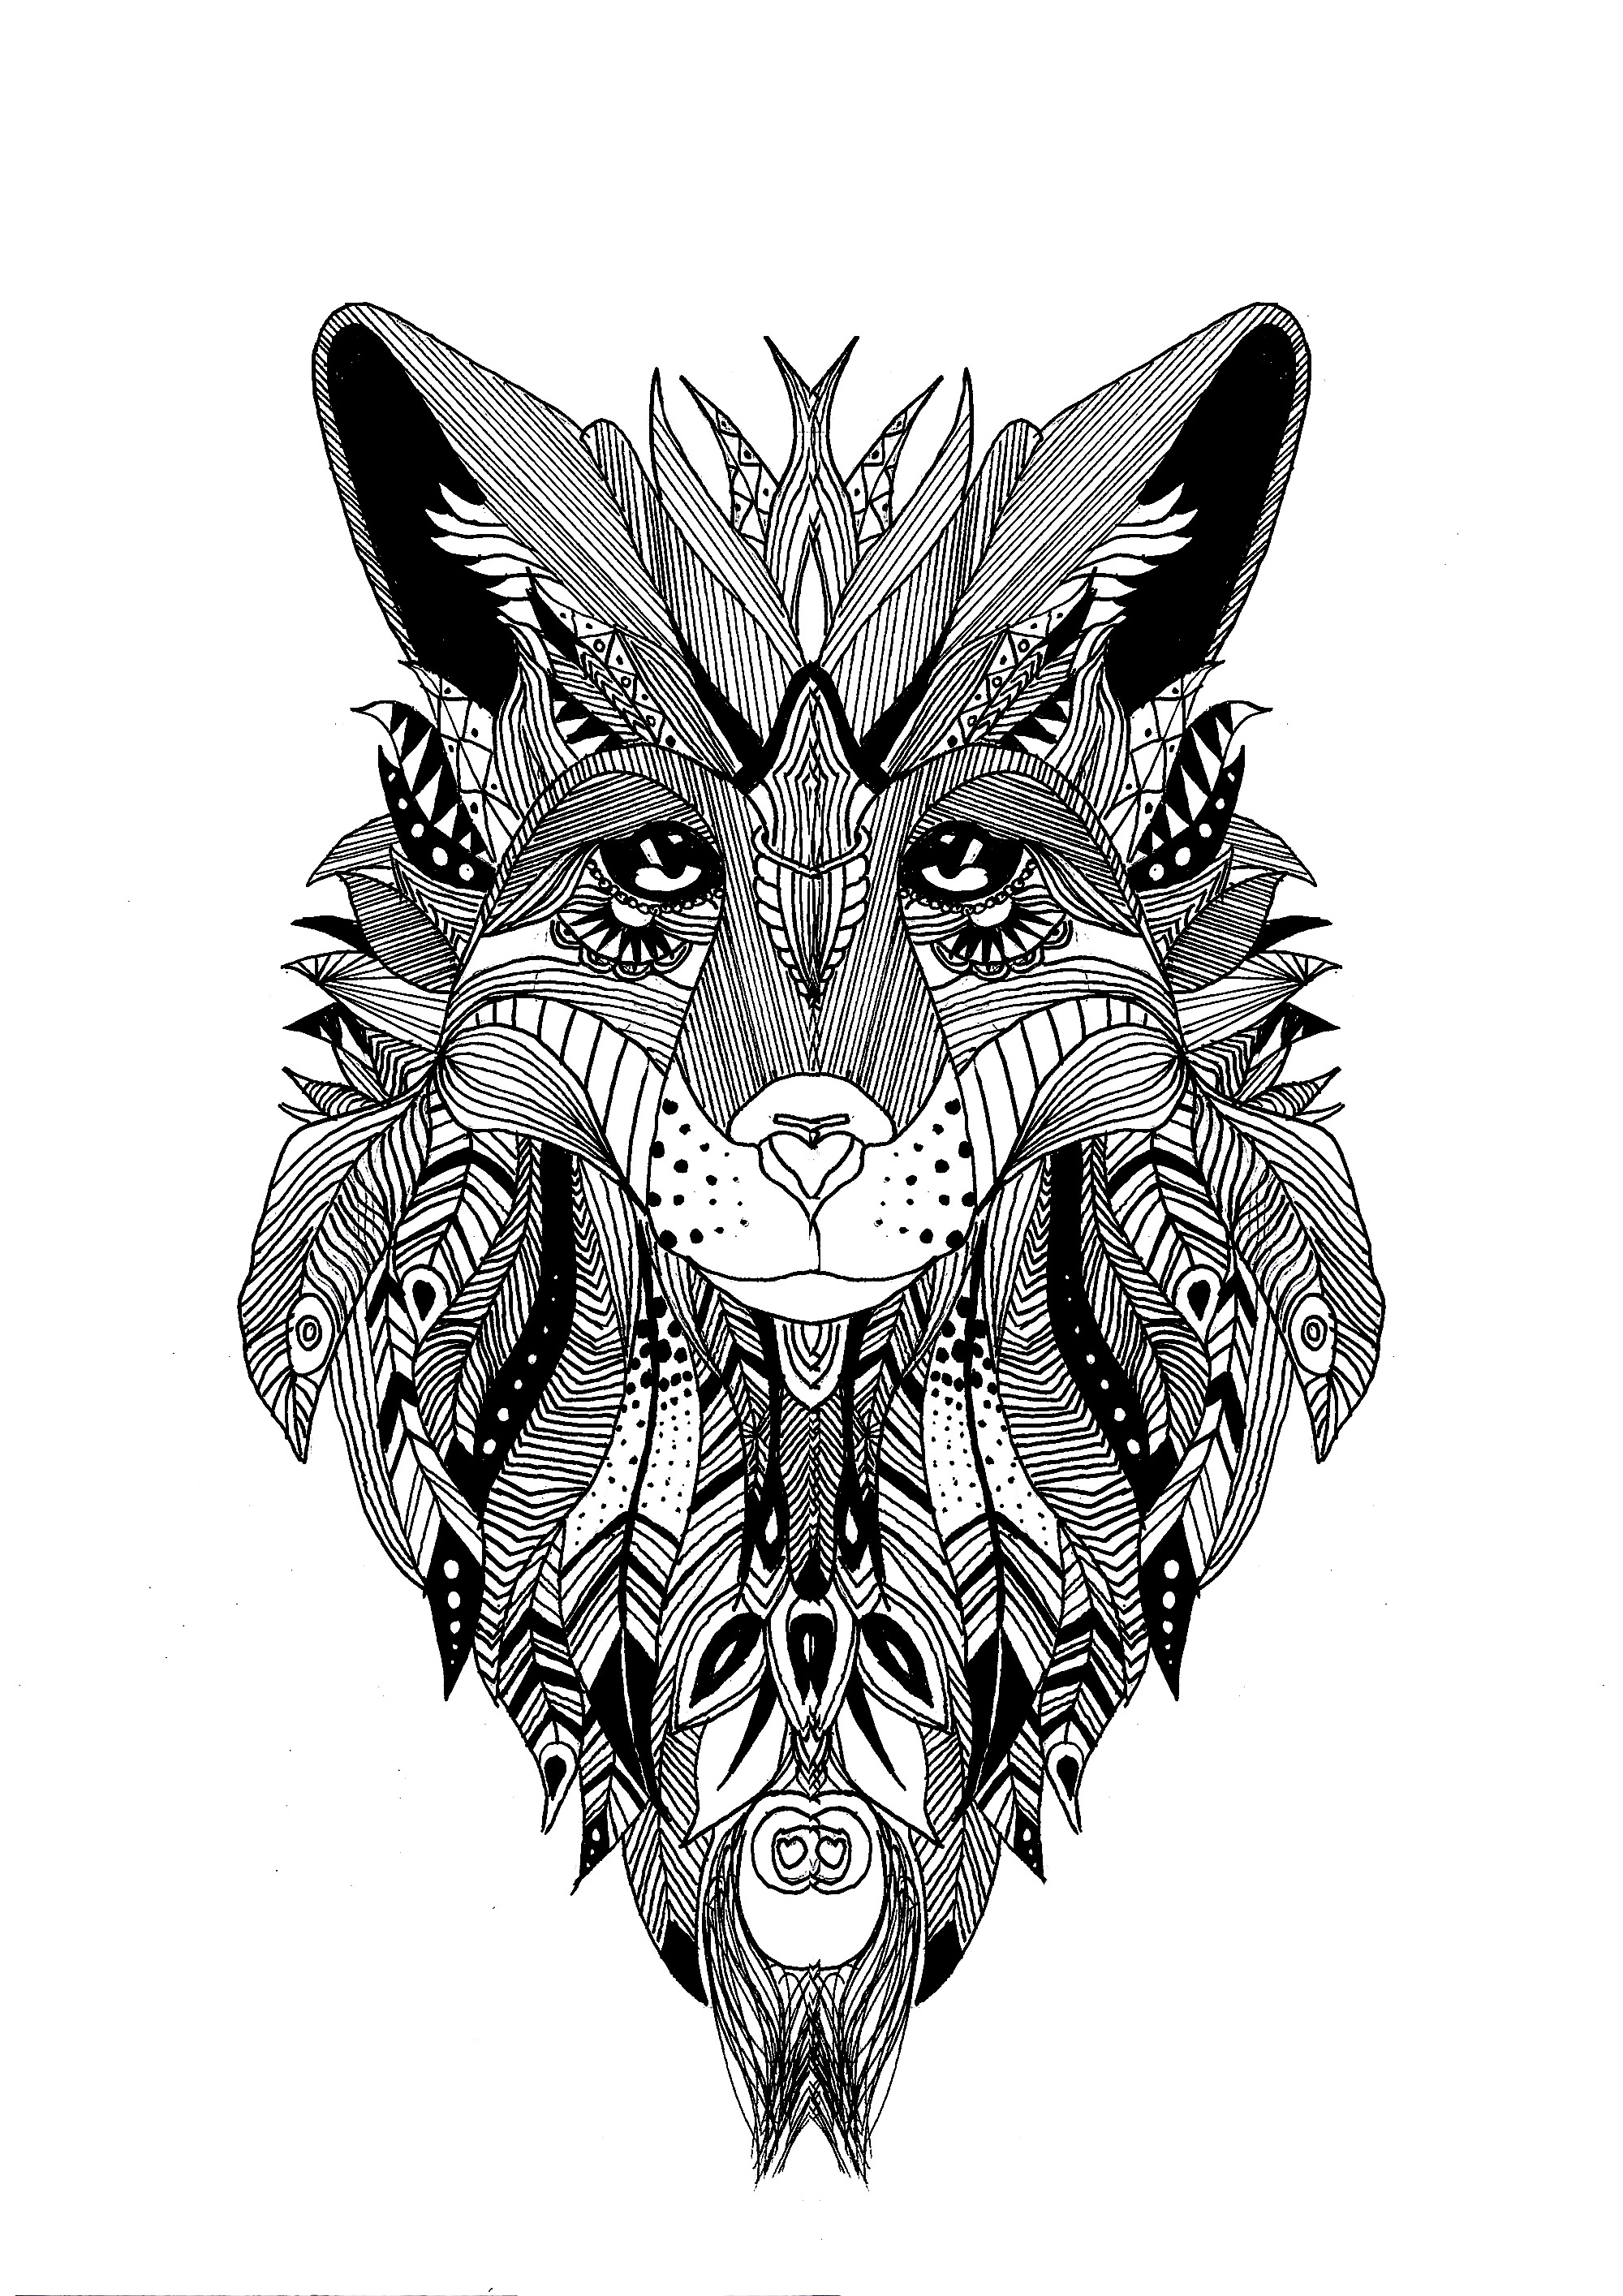 coloring page a wolf drawn with the style of zentangle and some feathers in his fur - Coloring Page A